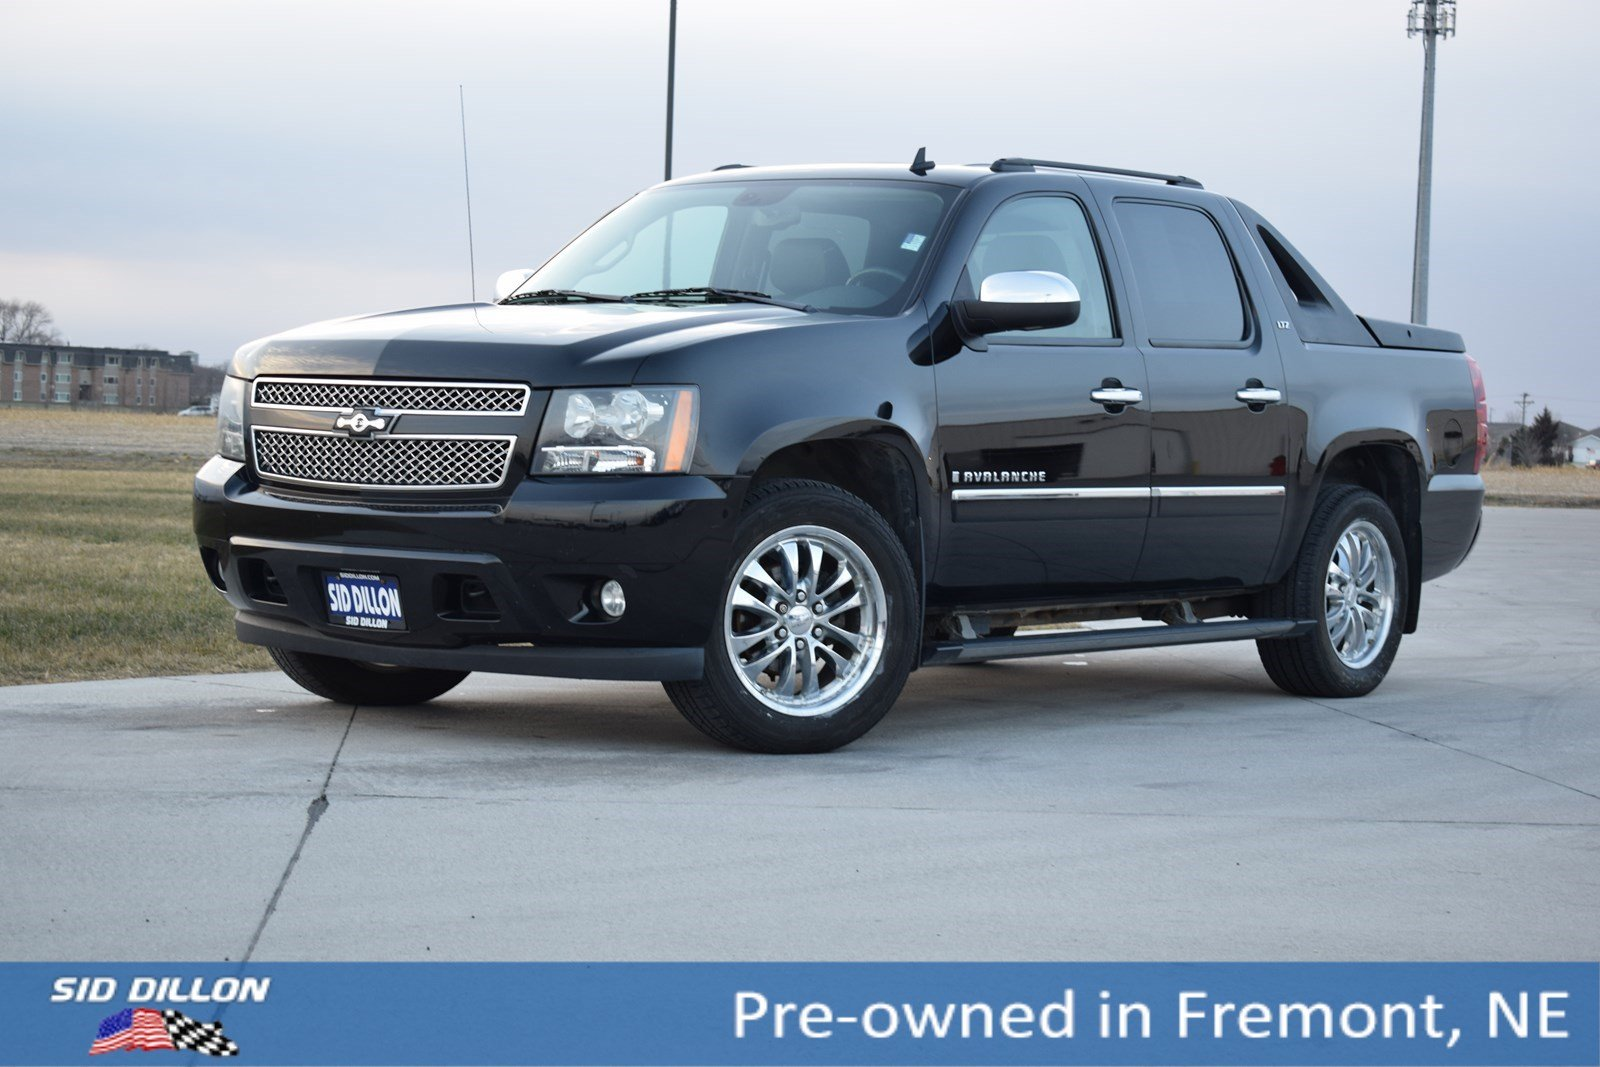 Avalanche chevy avalanche 2004 : Pre-Owned 2009 Chevrolet Avalanche LTZ Crew Cab in Fremont ...